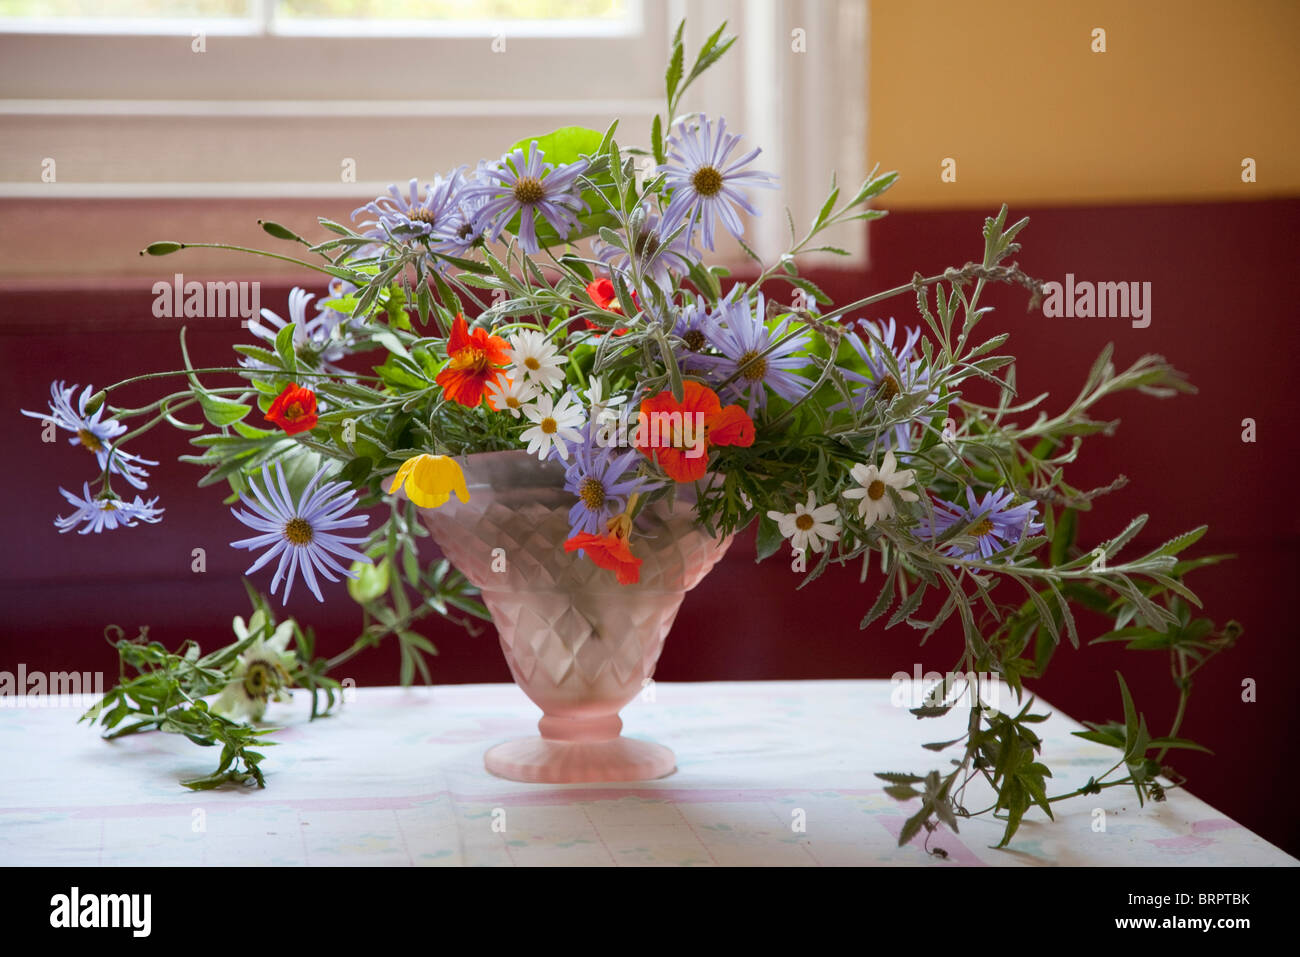 Flowers in vases and an English Garden Stock Photo